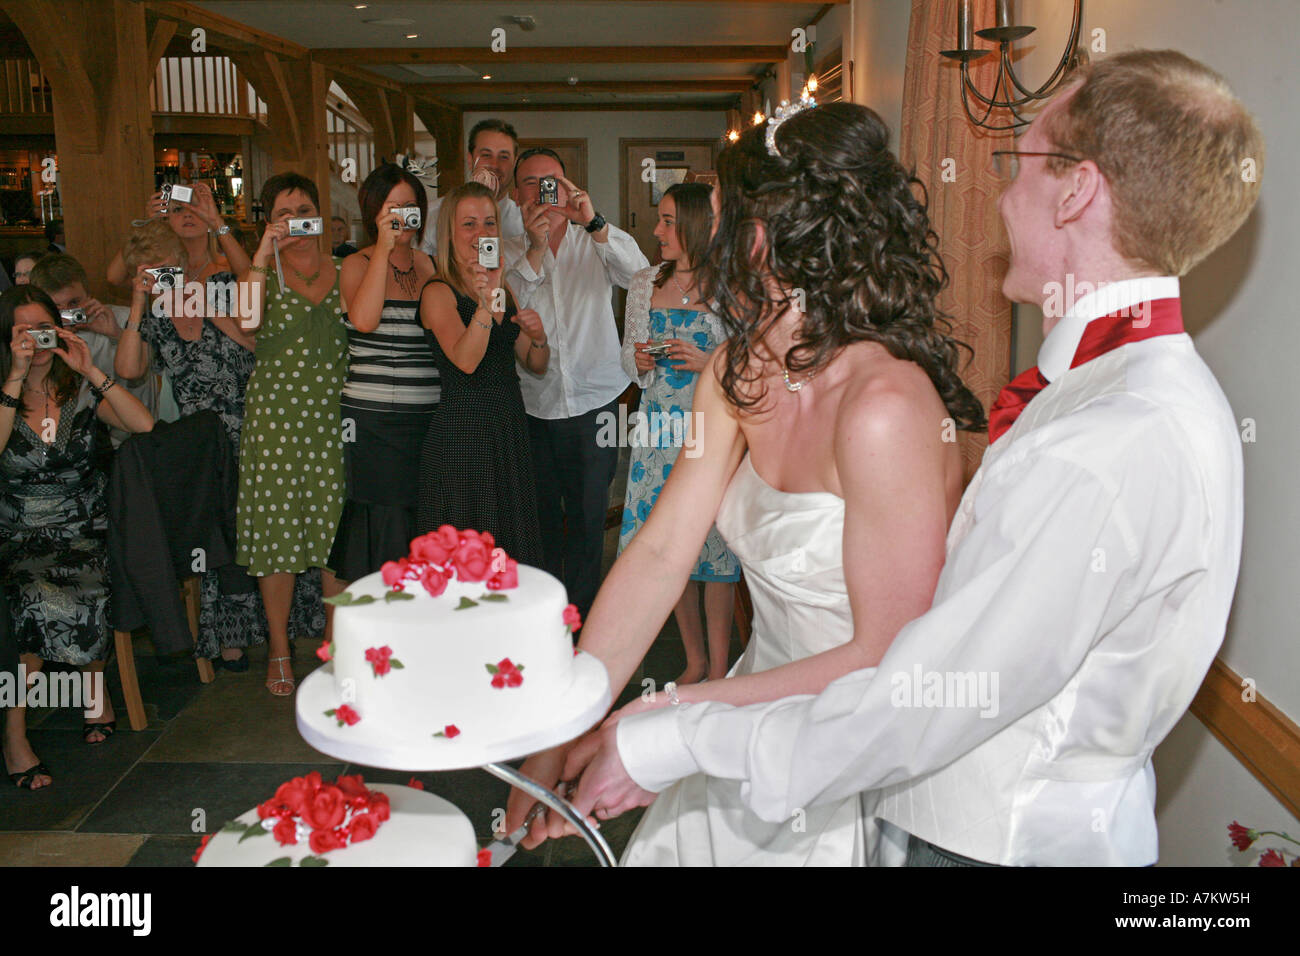 when to cut the wedding cake tradition a newly wed and groom cut their traditional wedding 27123